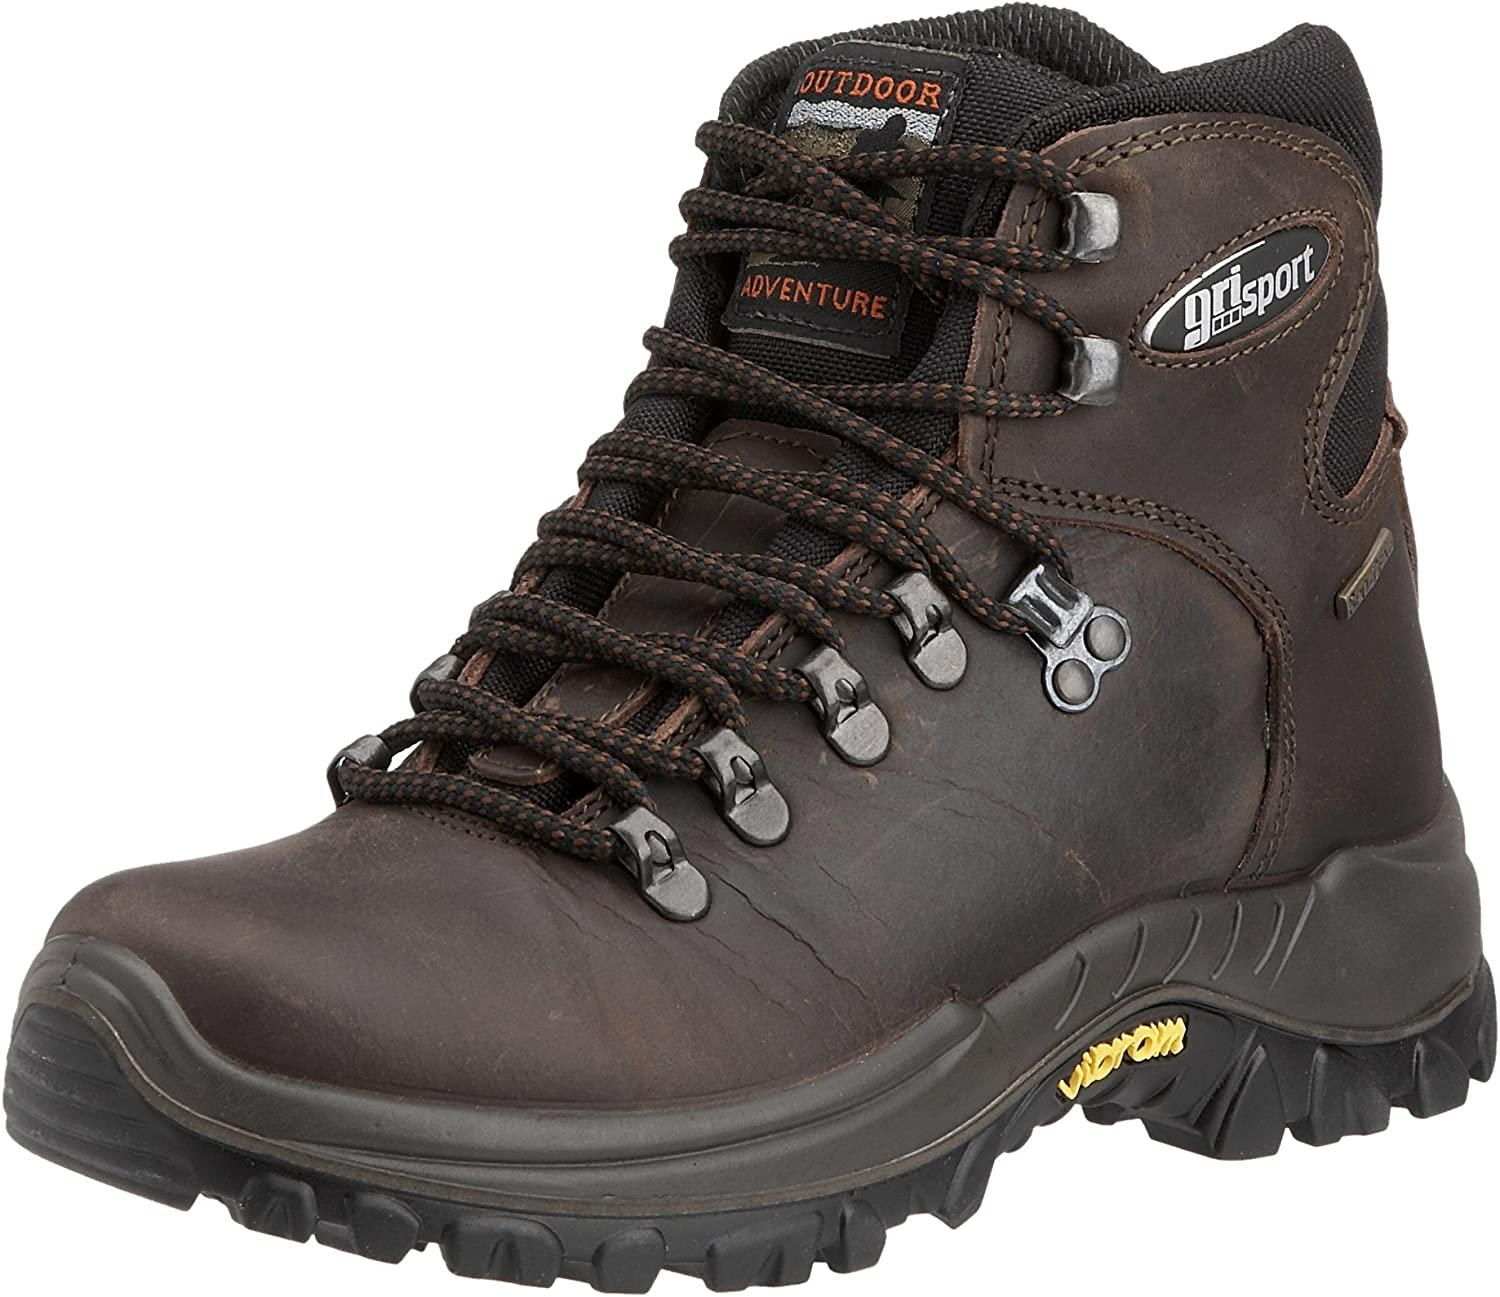 greyport Everest Italian Hiking Boot, Waterproof and Breathable with Vibram Sole Brown